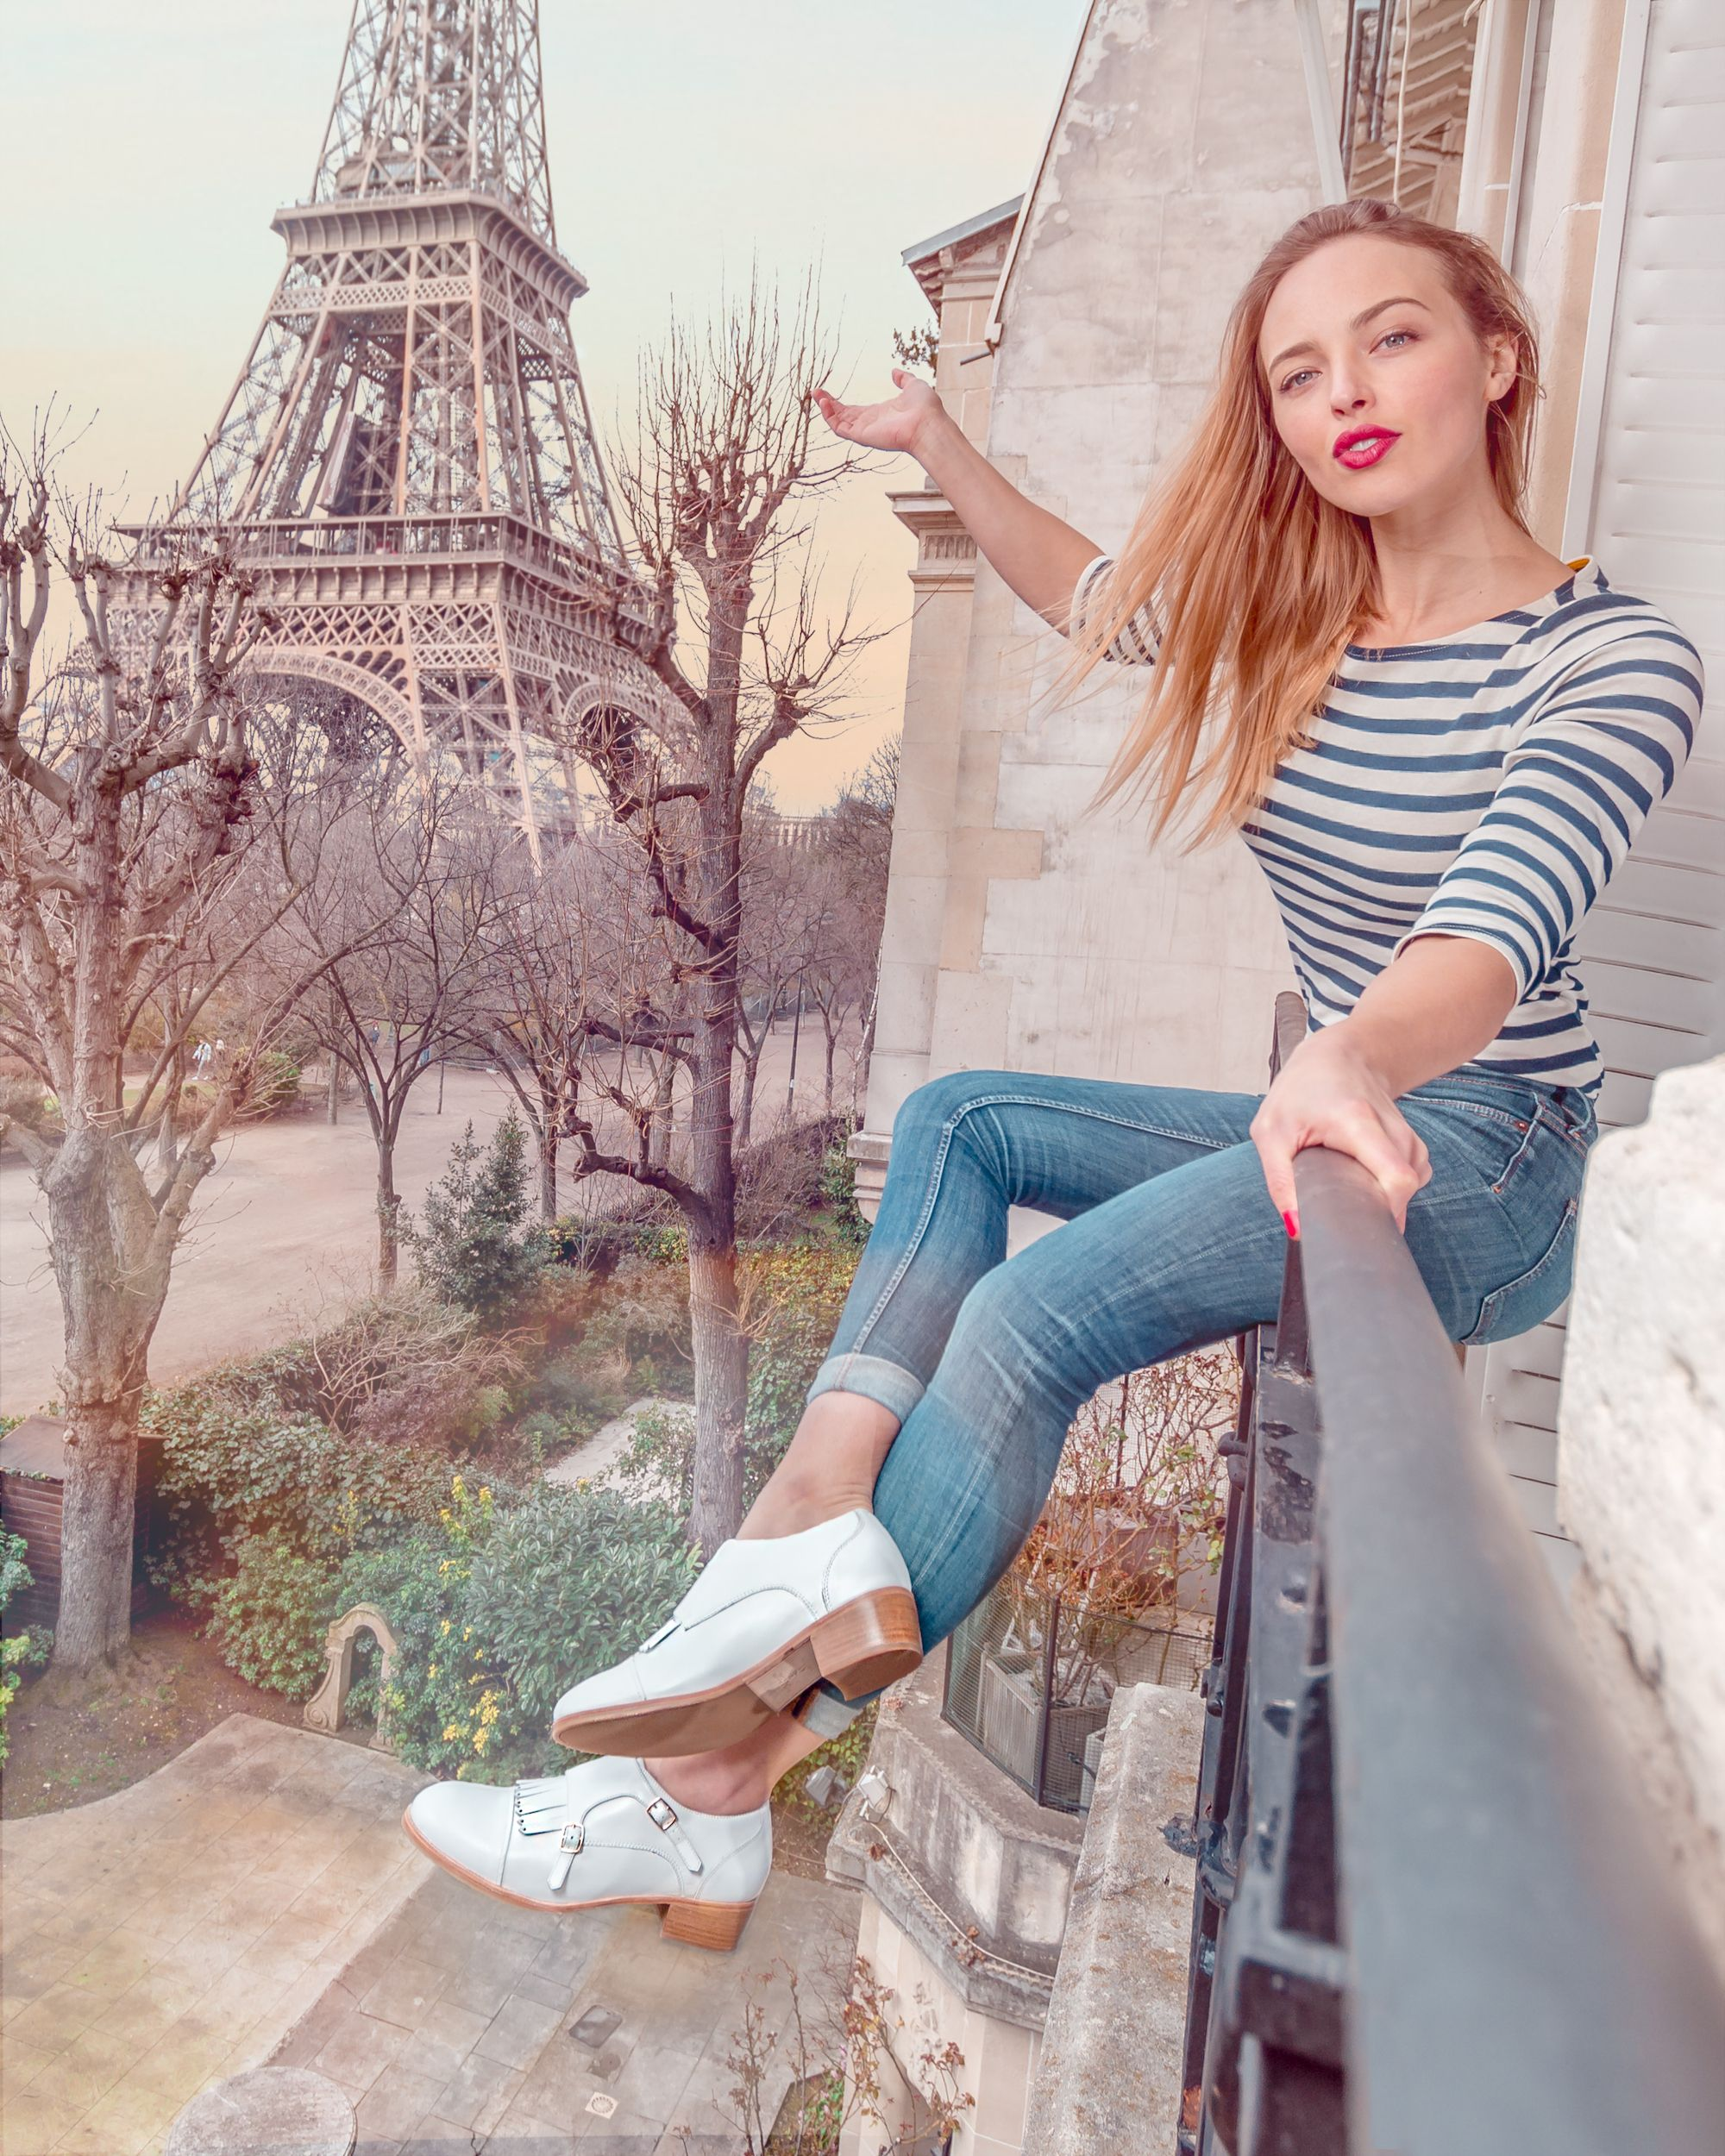 Bared_Footwear_Womens_Rooster_White_Double_Monks_Paris_Eiffel_Tower